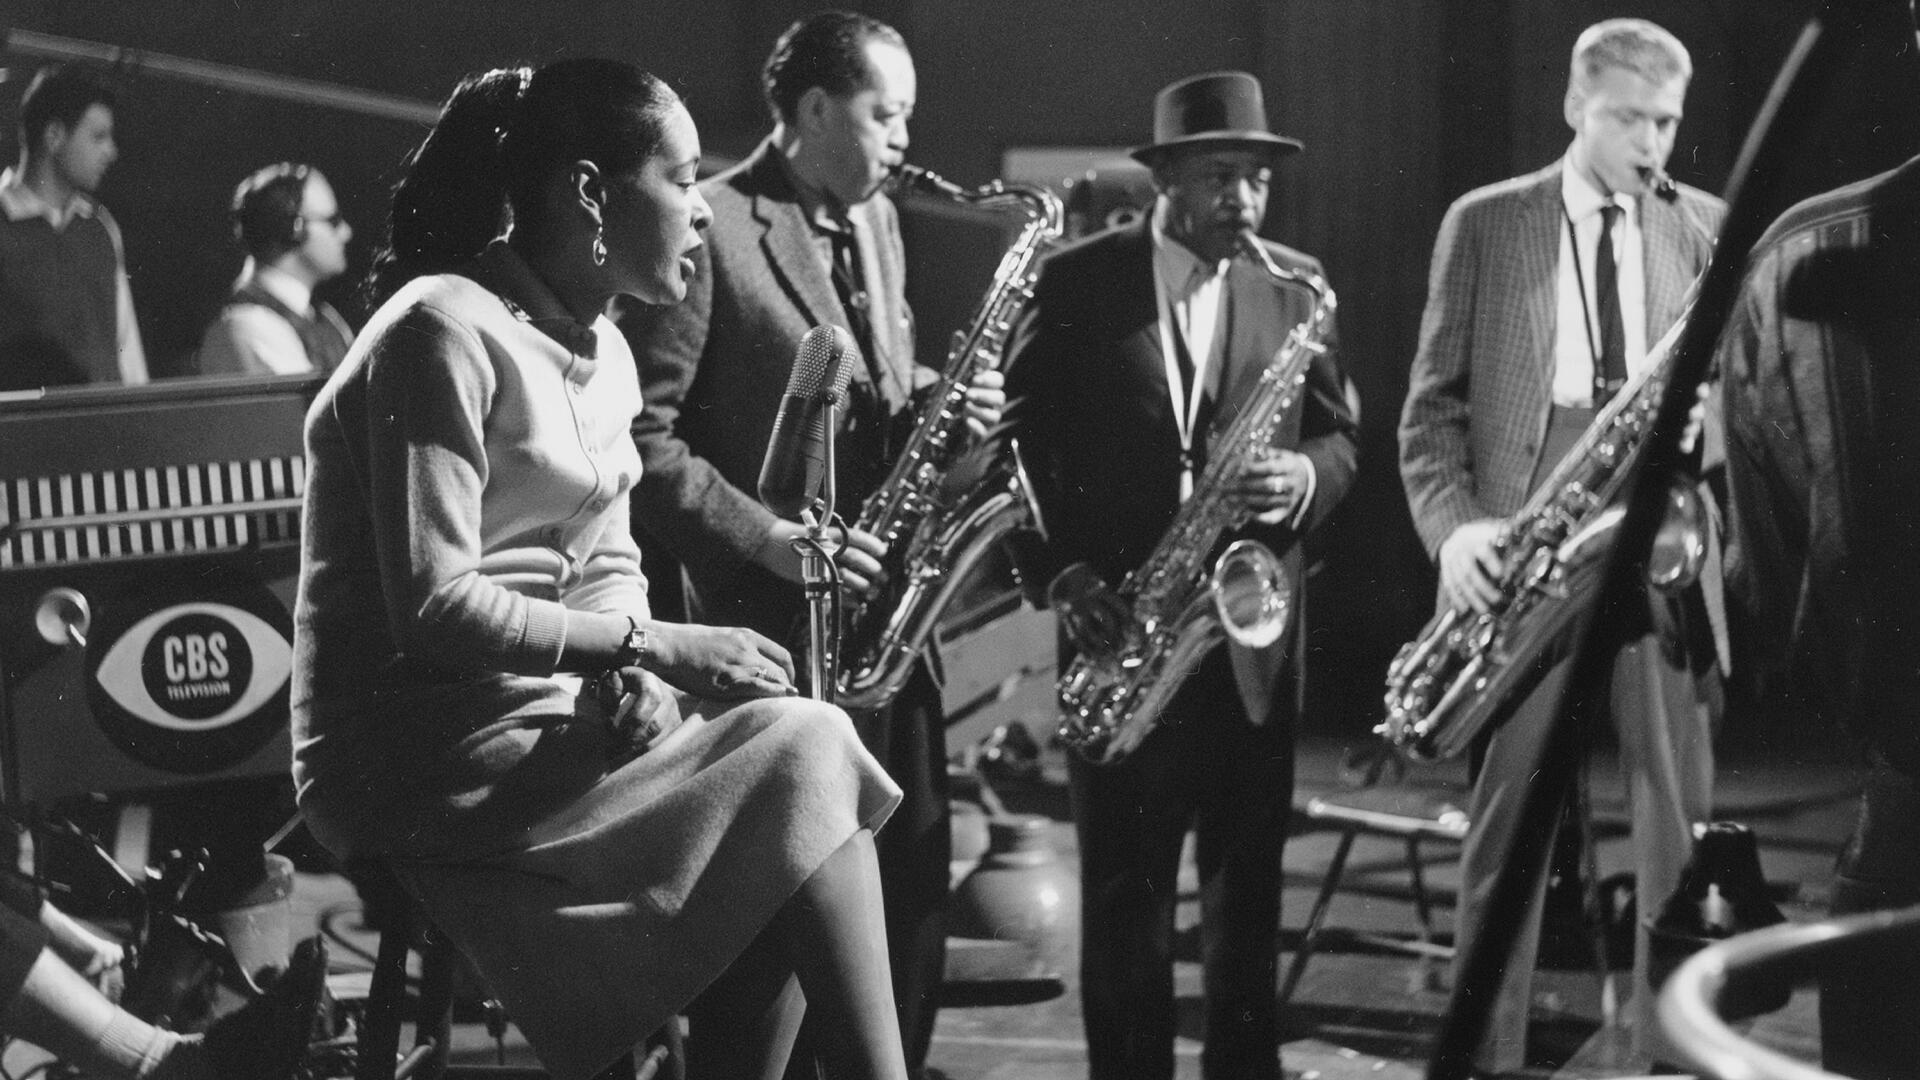 Billie Holiday - Lester Young - Coleman Hawkins et Gerry Mulligan - GettyImages-927680932